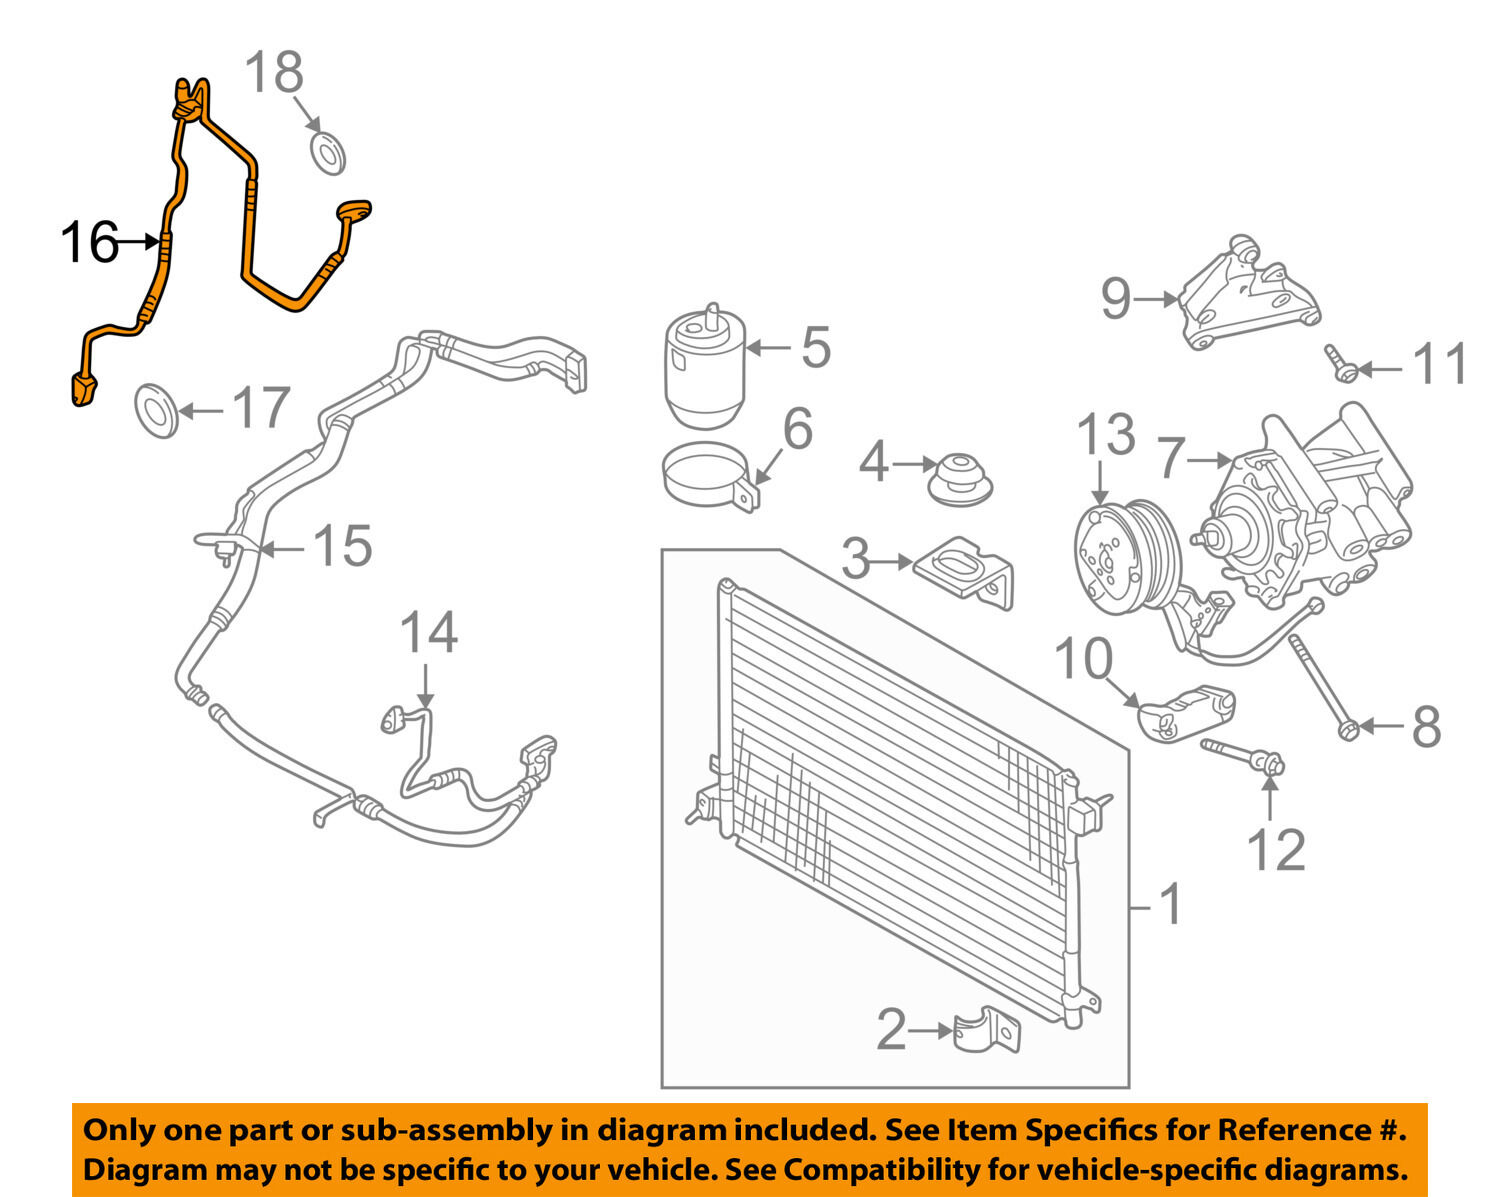 Jaguar Oem 02 06 S Type A C Ac Hose Line Pipe Xr842545 15399 Diagram Of The X 3 0 Engine 1 2free Shipping